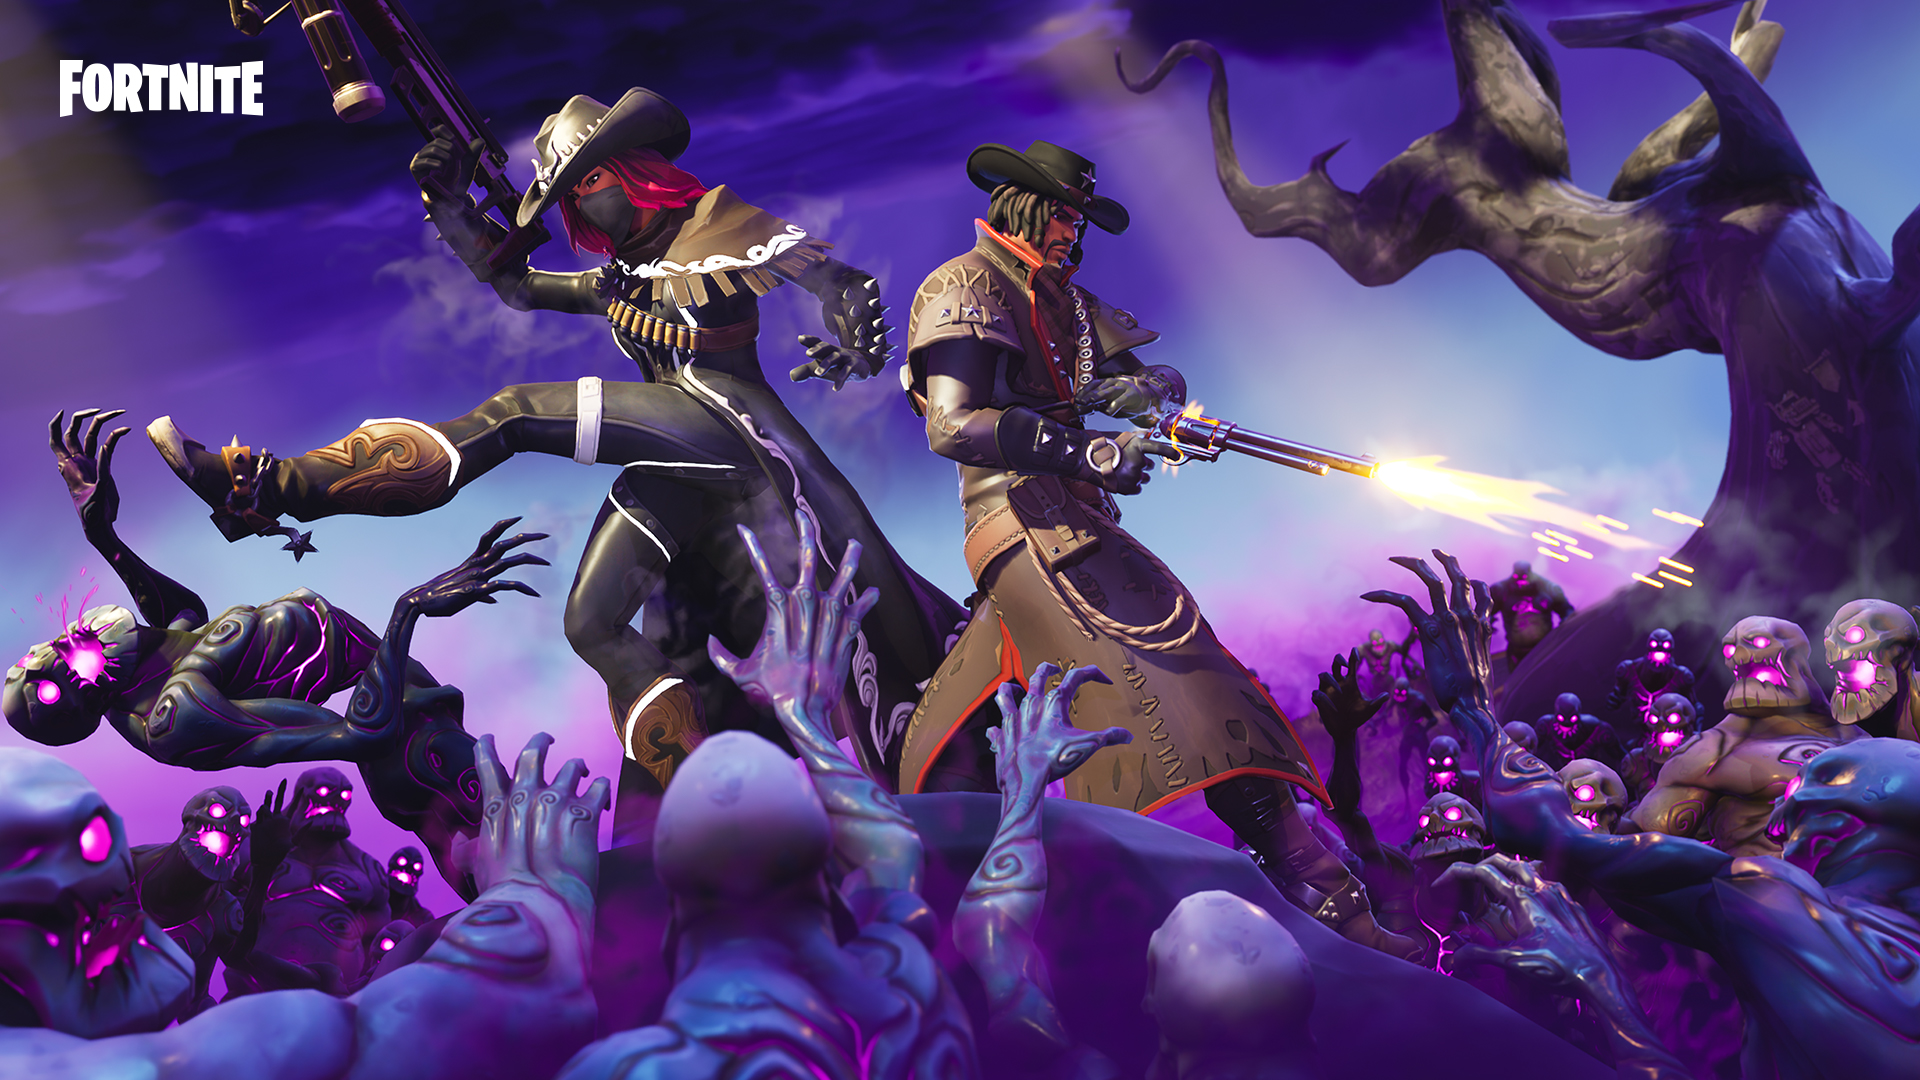 Fortnite_Team Terror